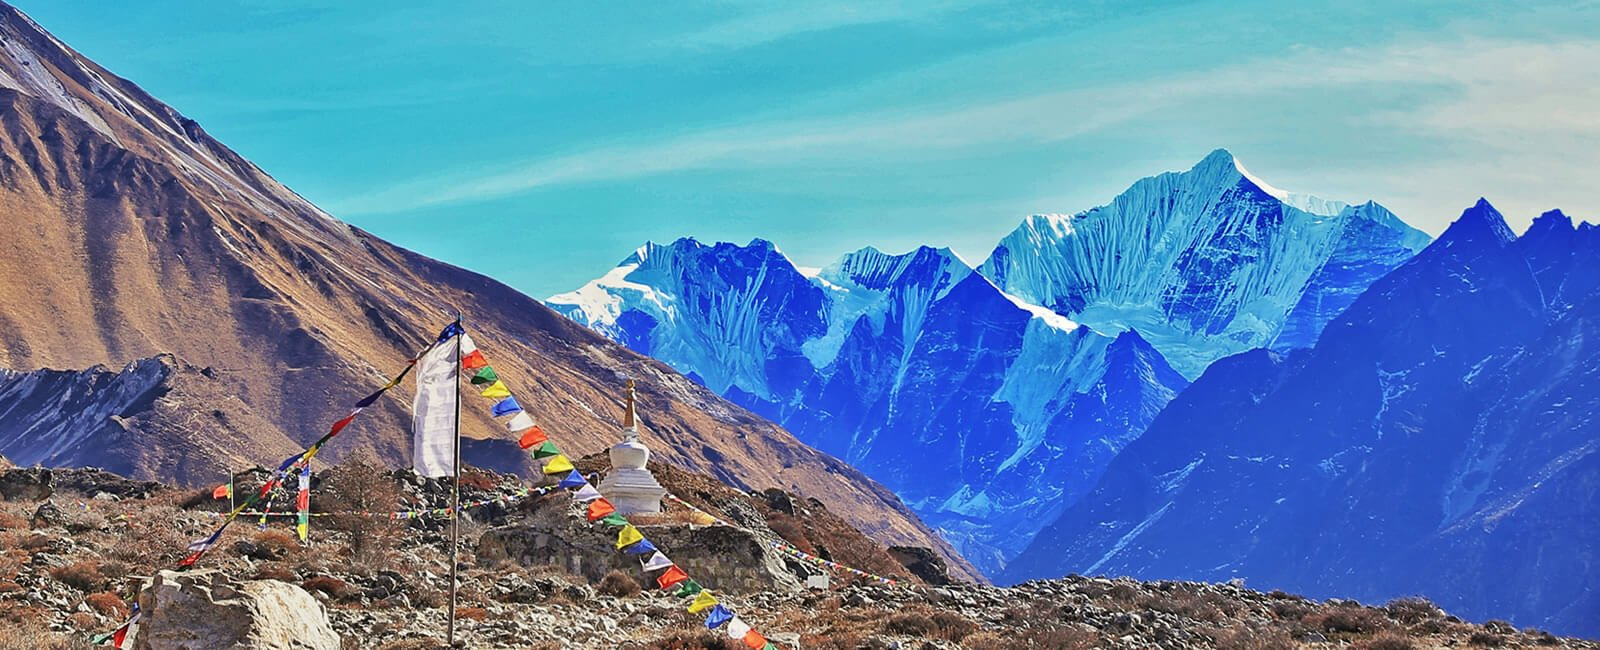 All you need to know about Langtang Valley Trek